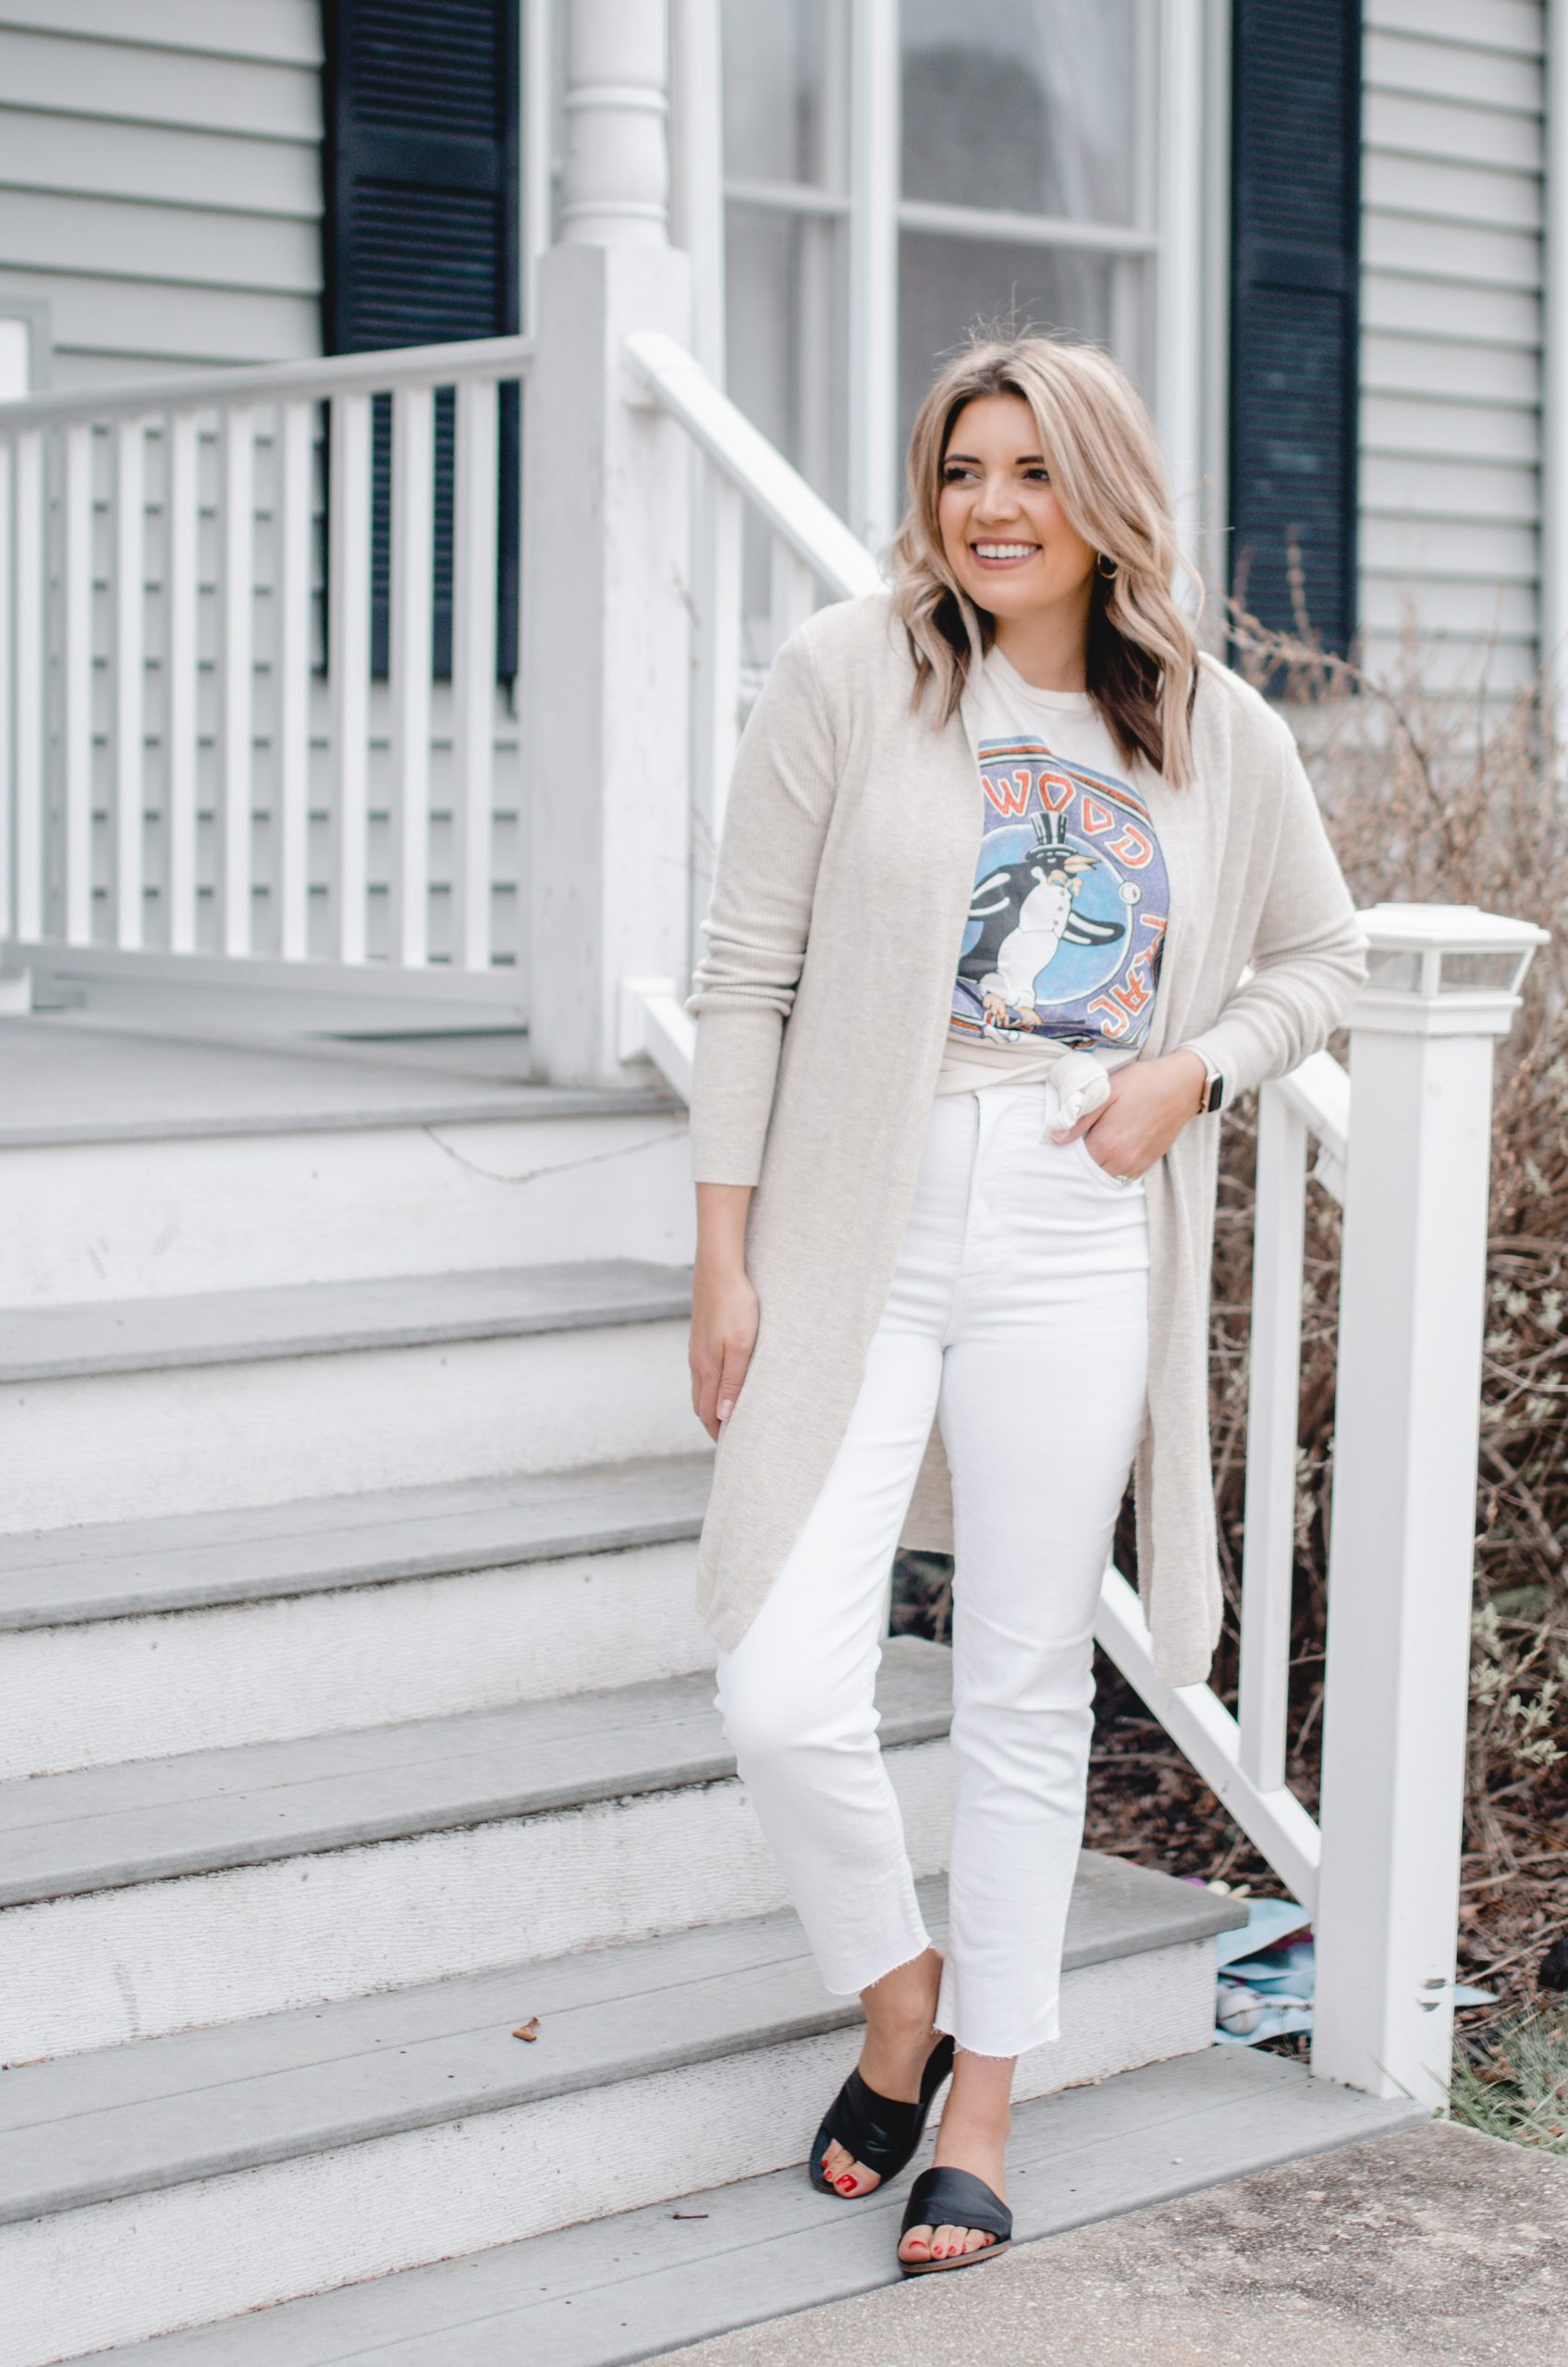 Virginia blogger, Lauren Dix, shares seven white jeans outfits for spring!